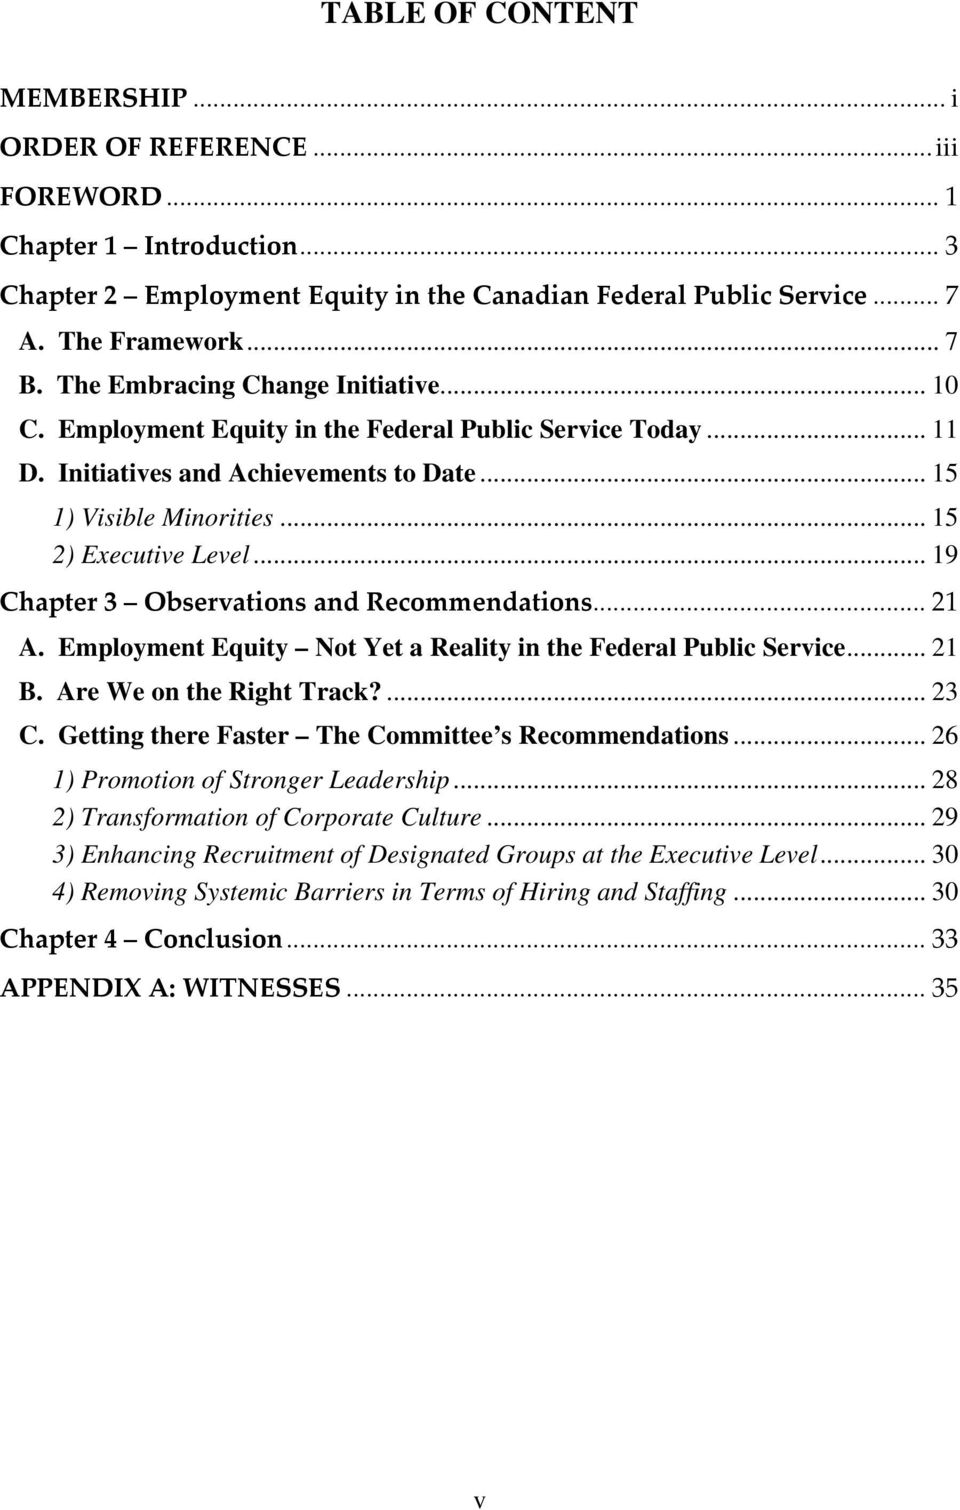 .. 19 Chapter 3 Observations and Recommendations... 21 A. Employment Equity Not Yet a Reality in the Federal Public Service... 21 B. Are We on the Right Track?... 23 C.